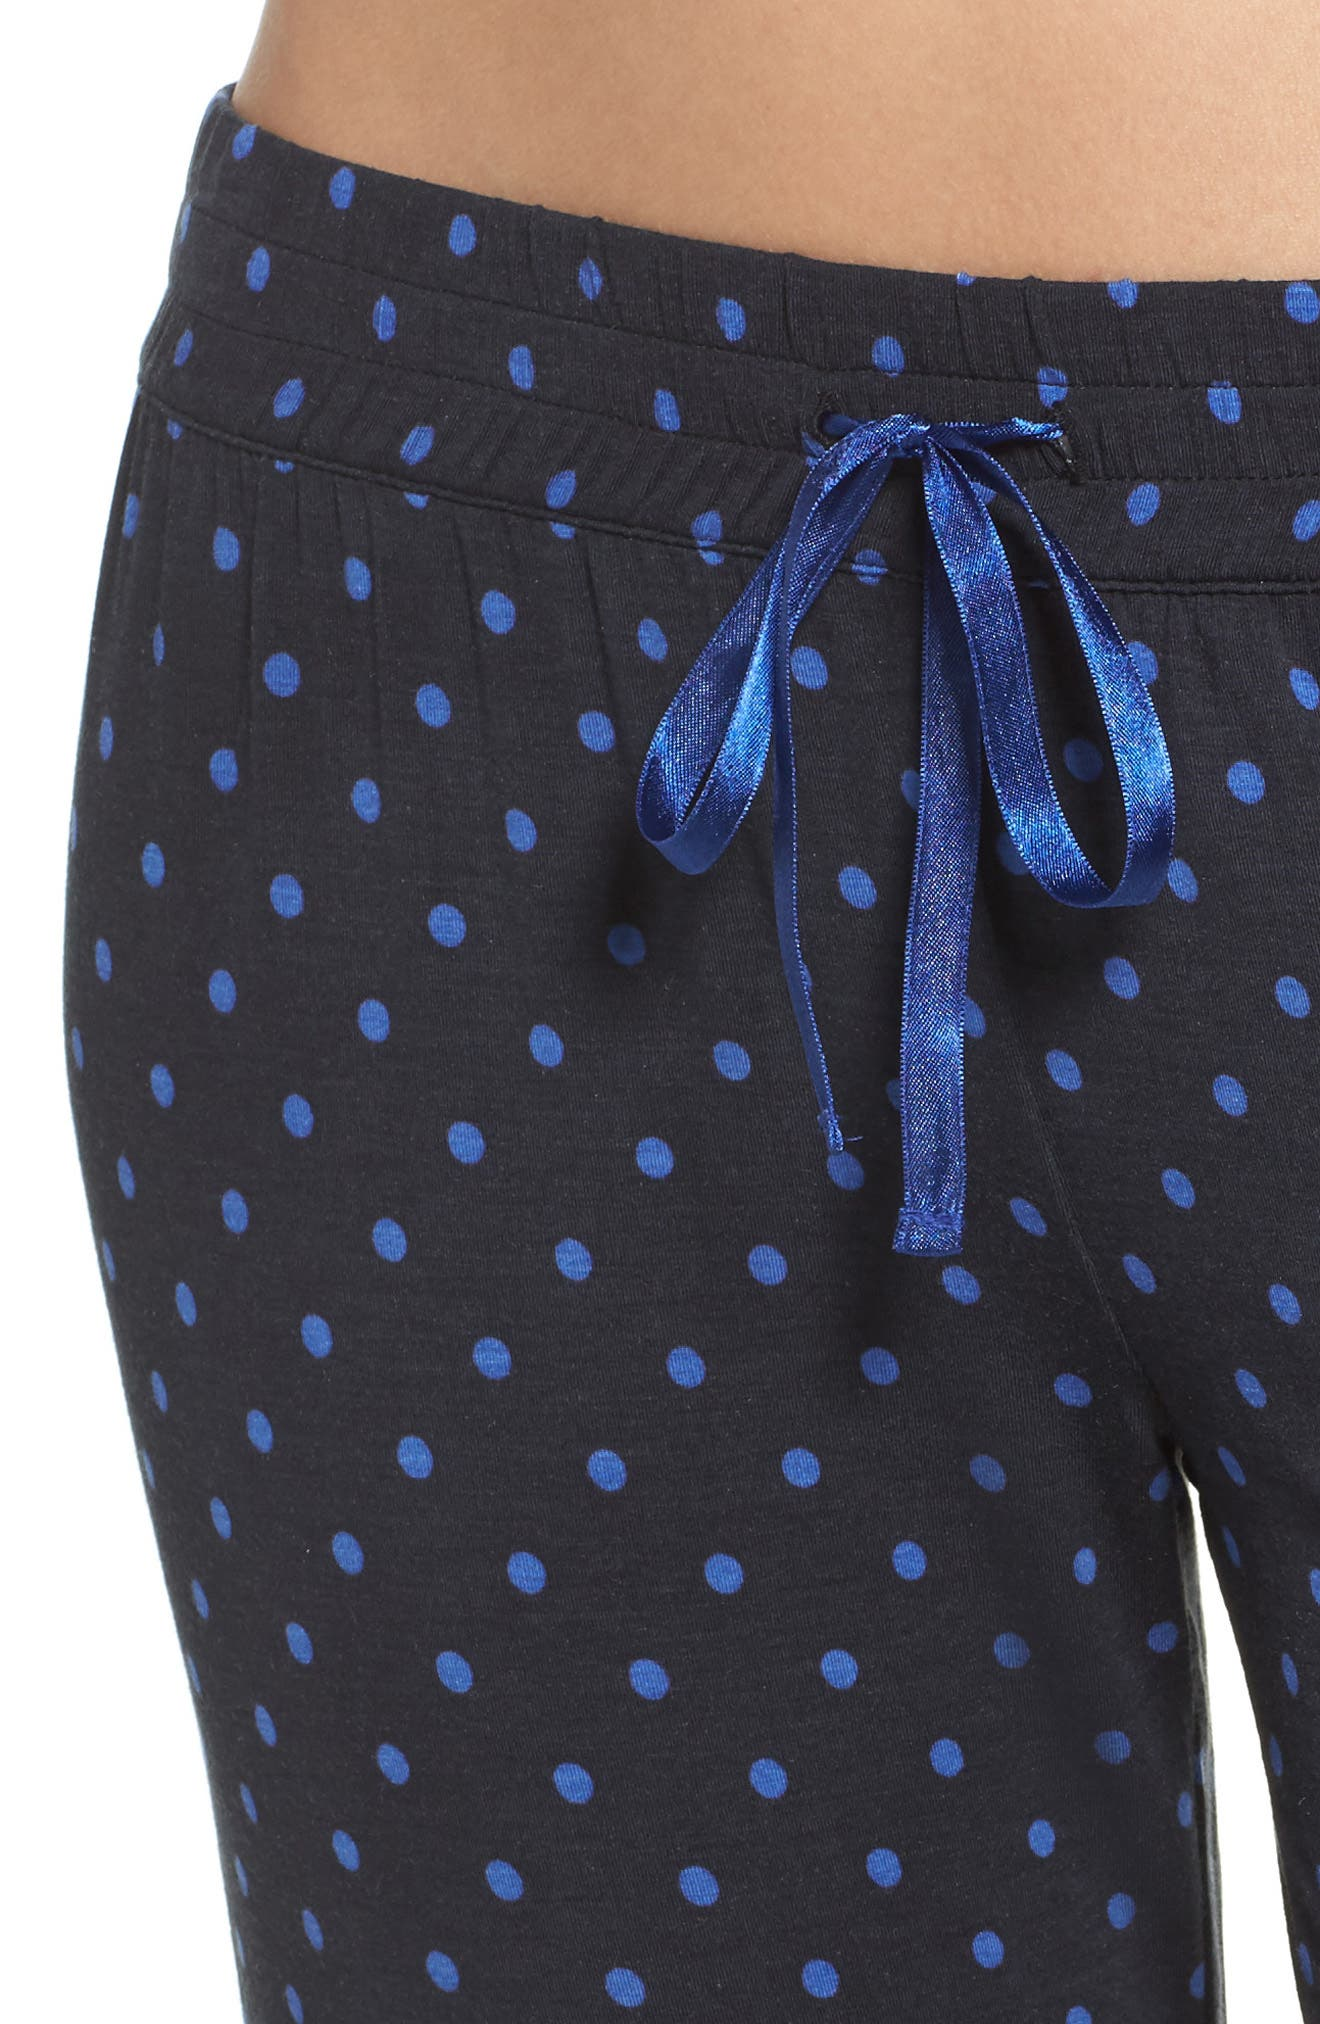 Dot Lounge Pants,                             Alternate thumbnail 4, color,                             400